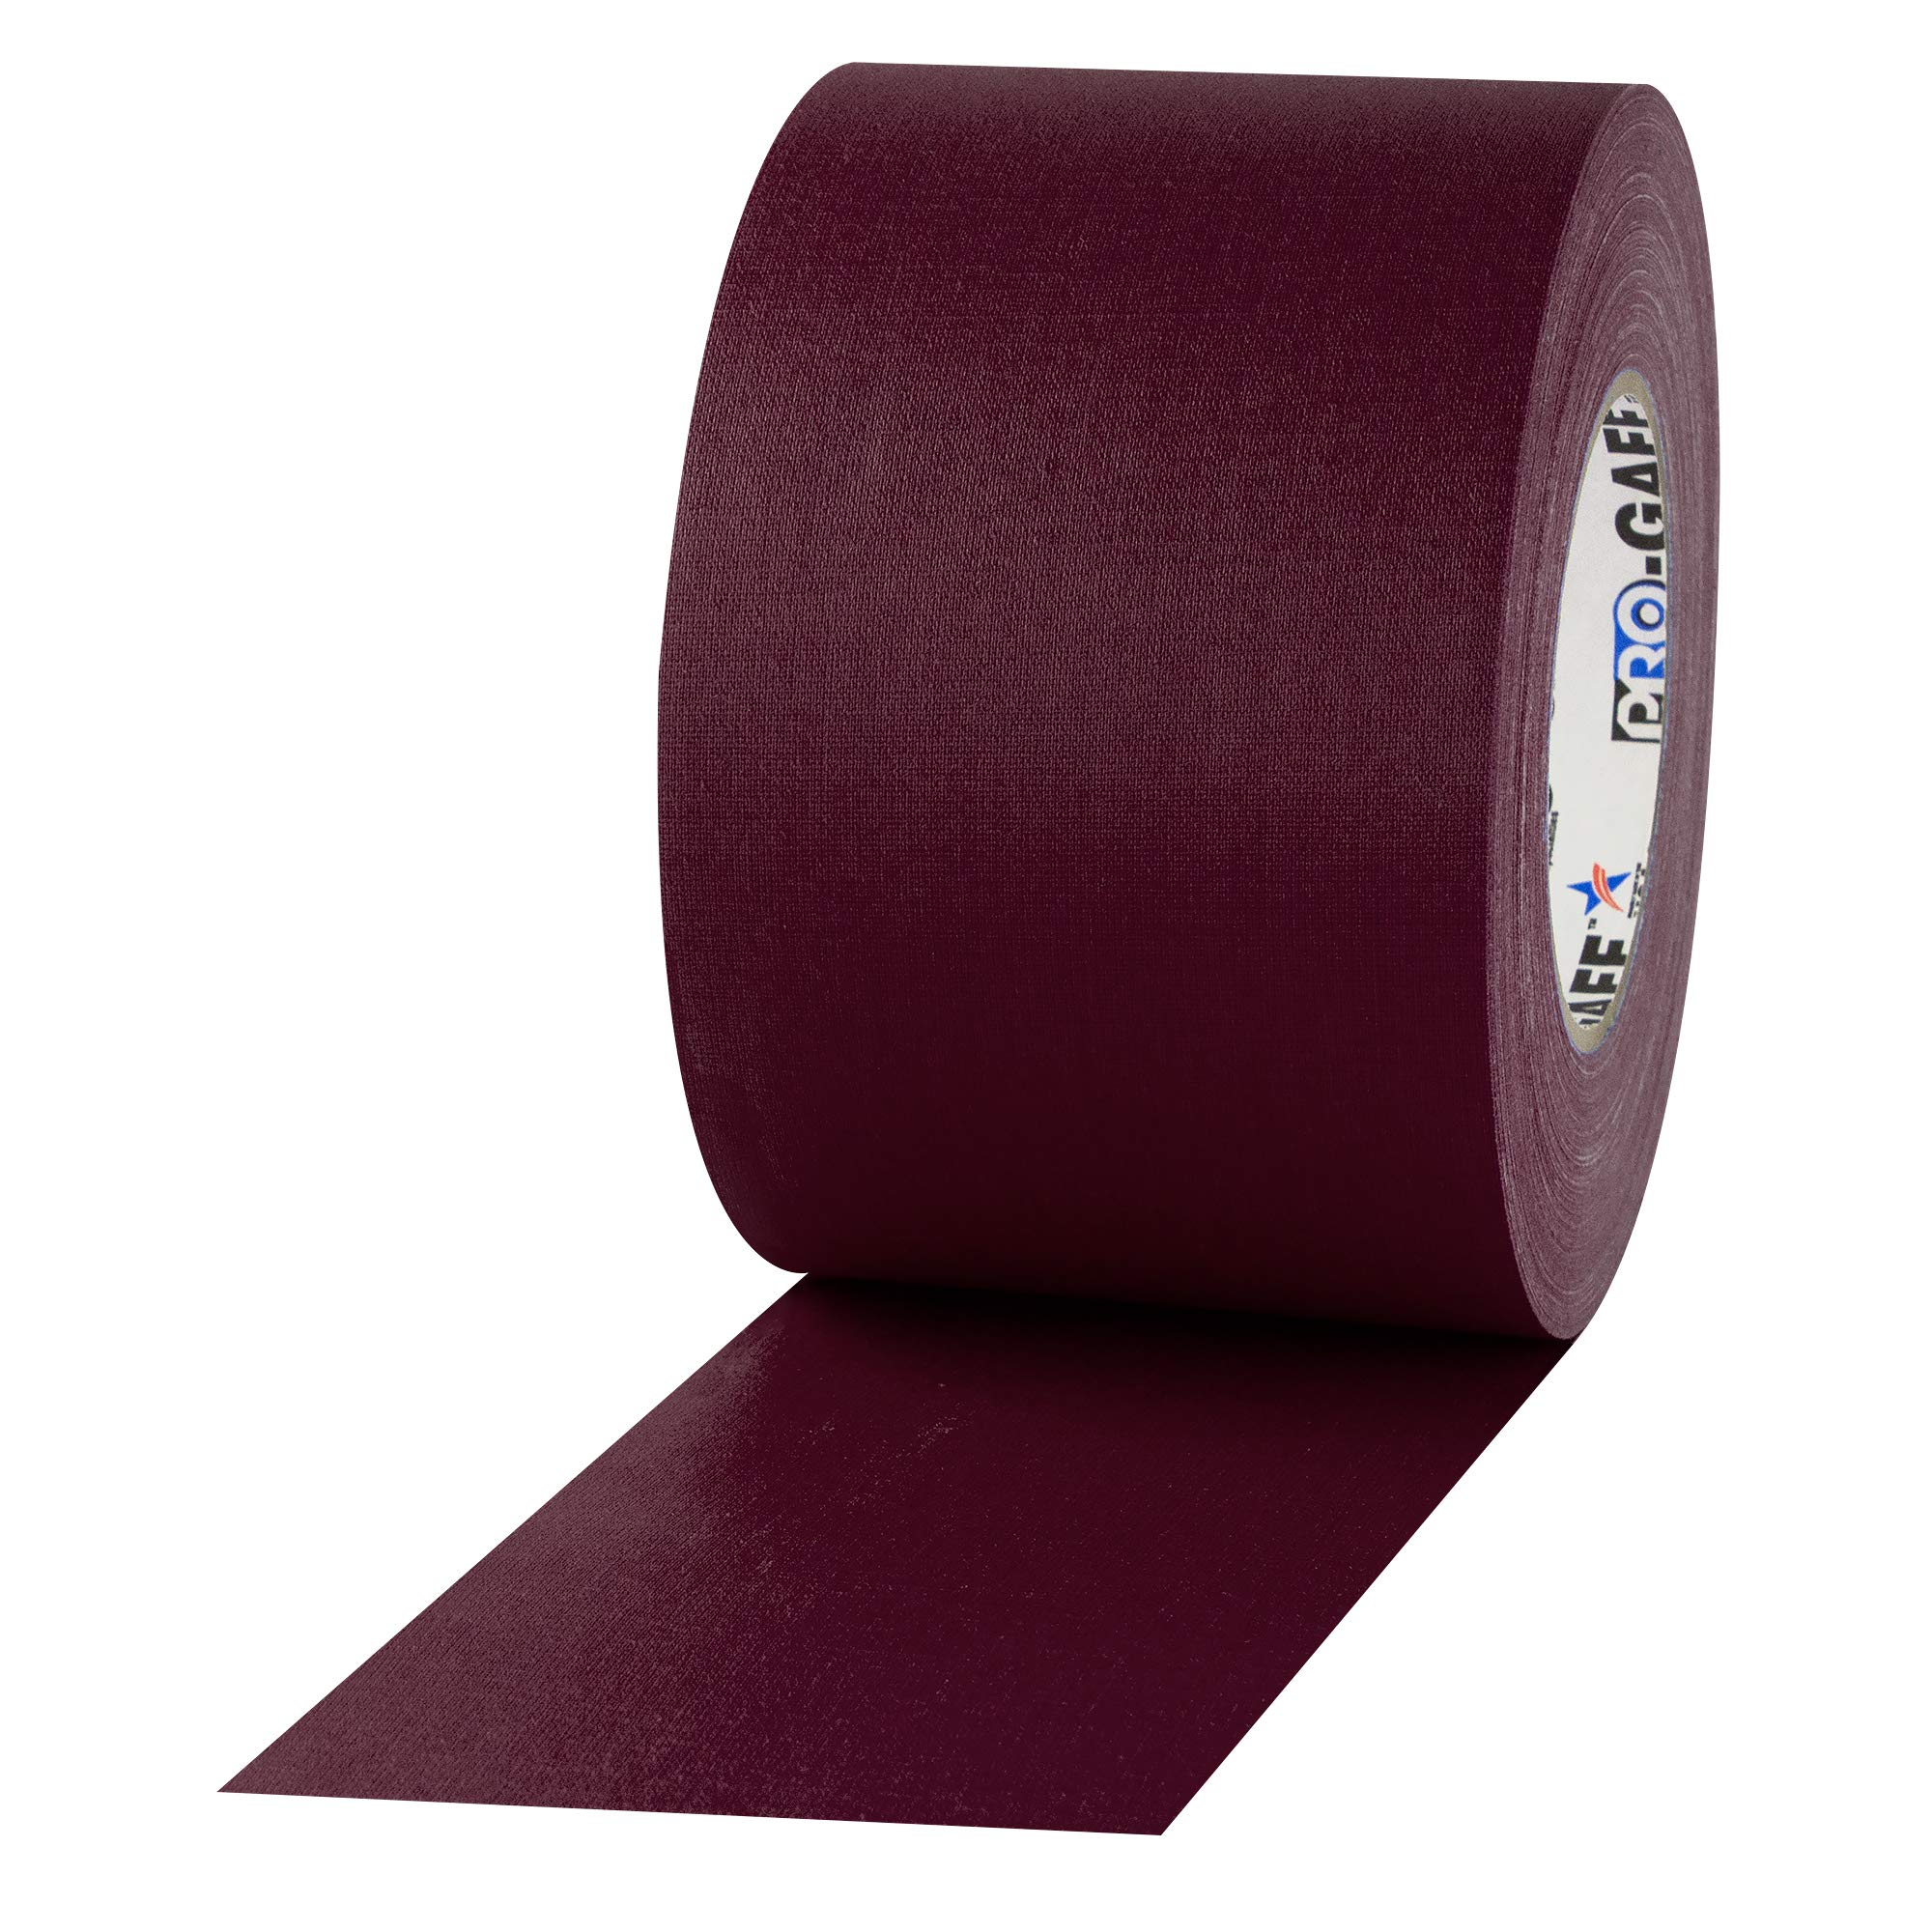 """4"""" Width ProTapes Pro Gaff Premium Matte Cloth Gaffer's Tape With Rubber Adhesive, 11 mils Thick, 55 yds Length, Burgundy (Pack of 1)"""